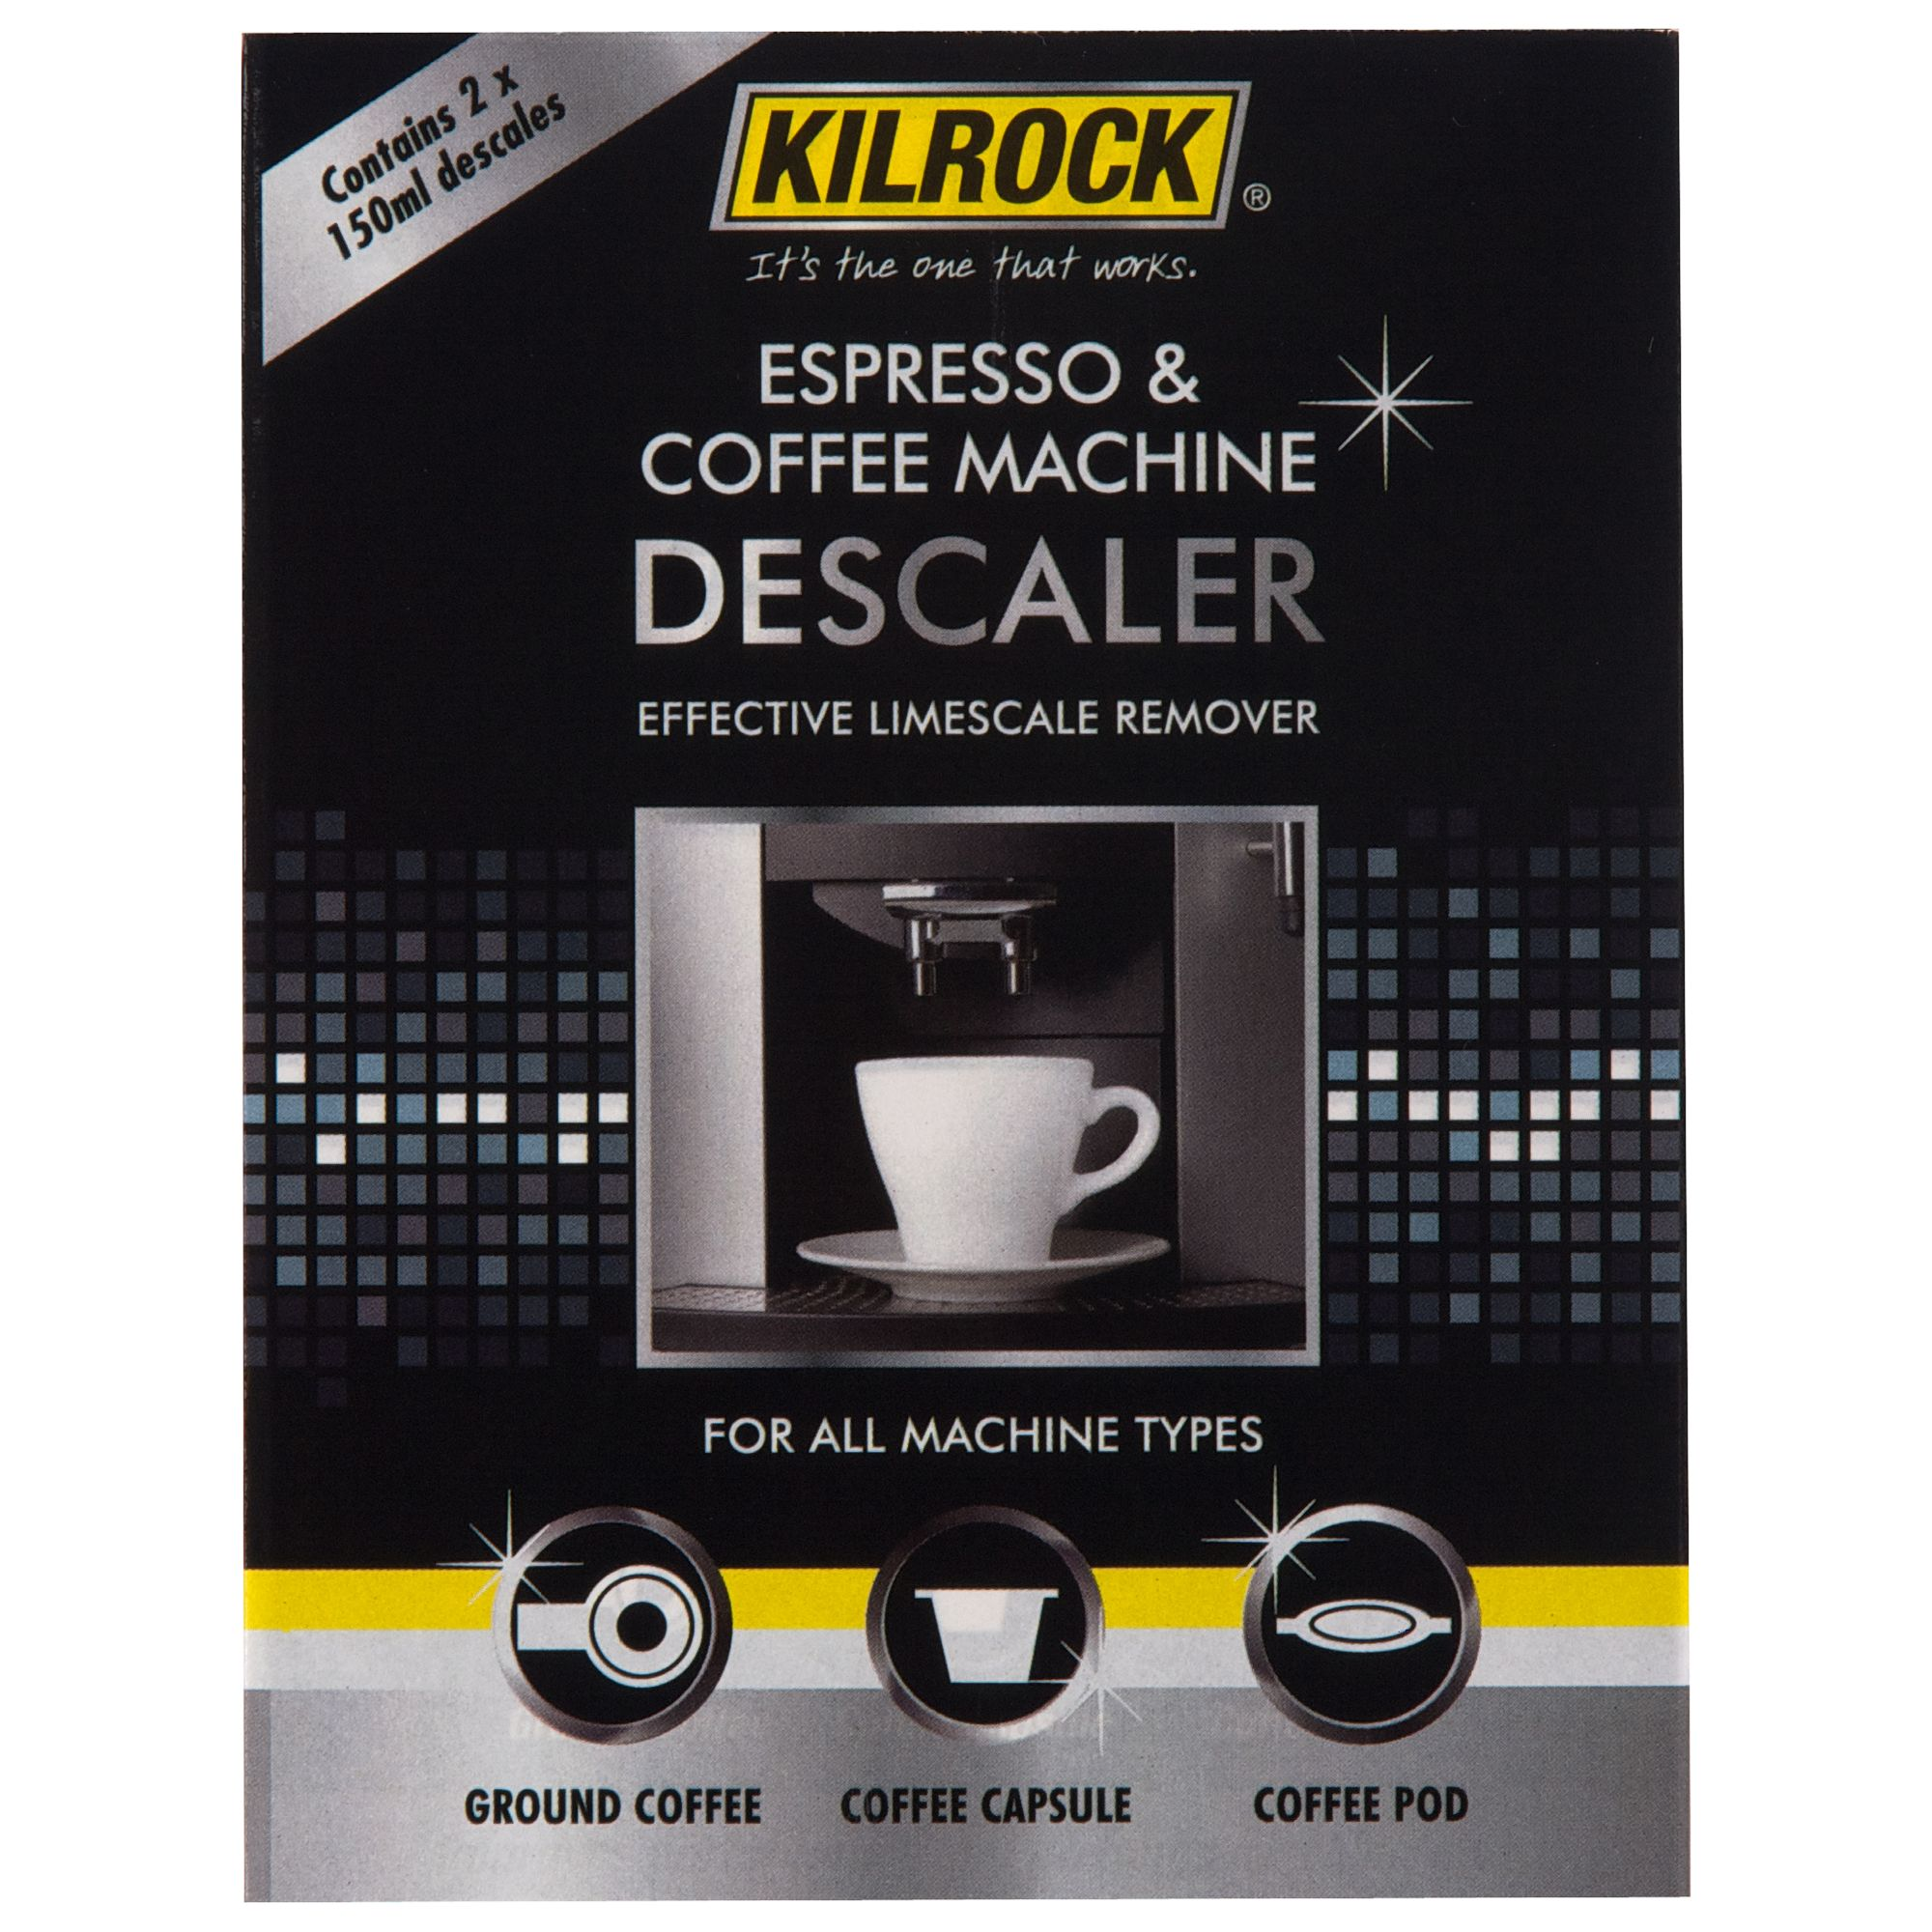 Delonghi Coffee Maker Homebase : Buy cheap Espresso machine - compare Coffee Makers prices for best UK deals